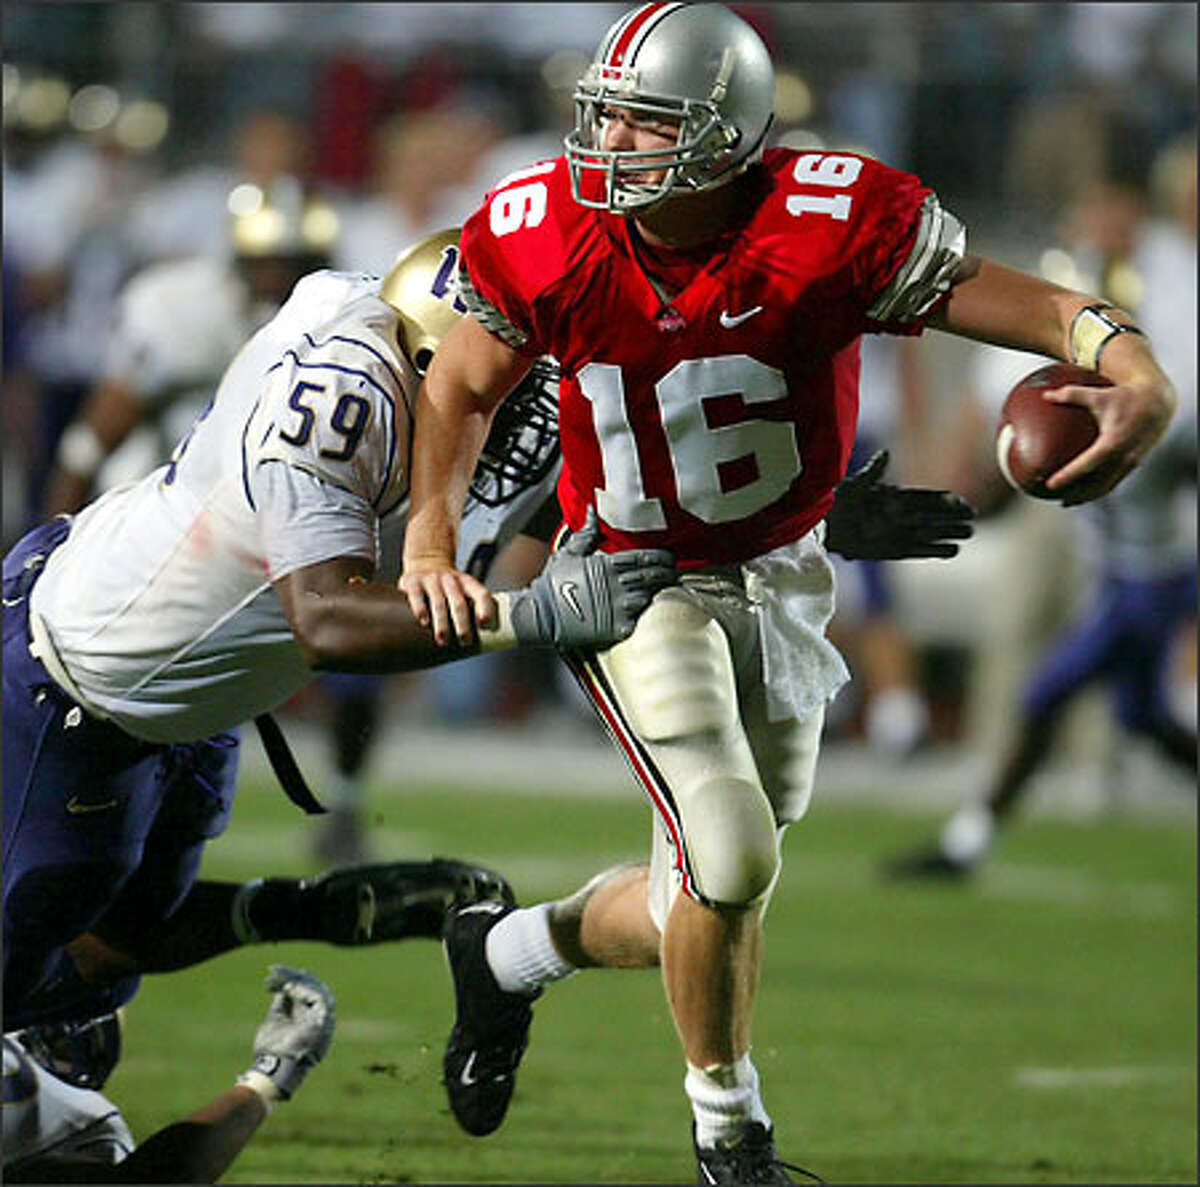 Washington's Jerome Stevens grabs for Ohio State quarterback Craig Krenzel in the second half. Stevens slowed Krenzel enough for Tui Alailefaleula to finish off the sack.